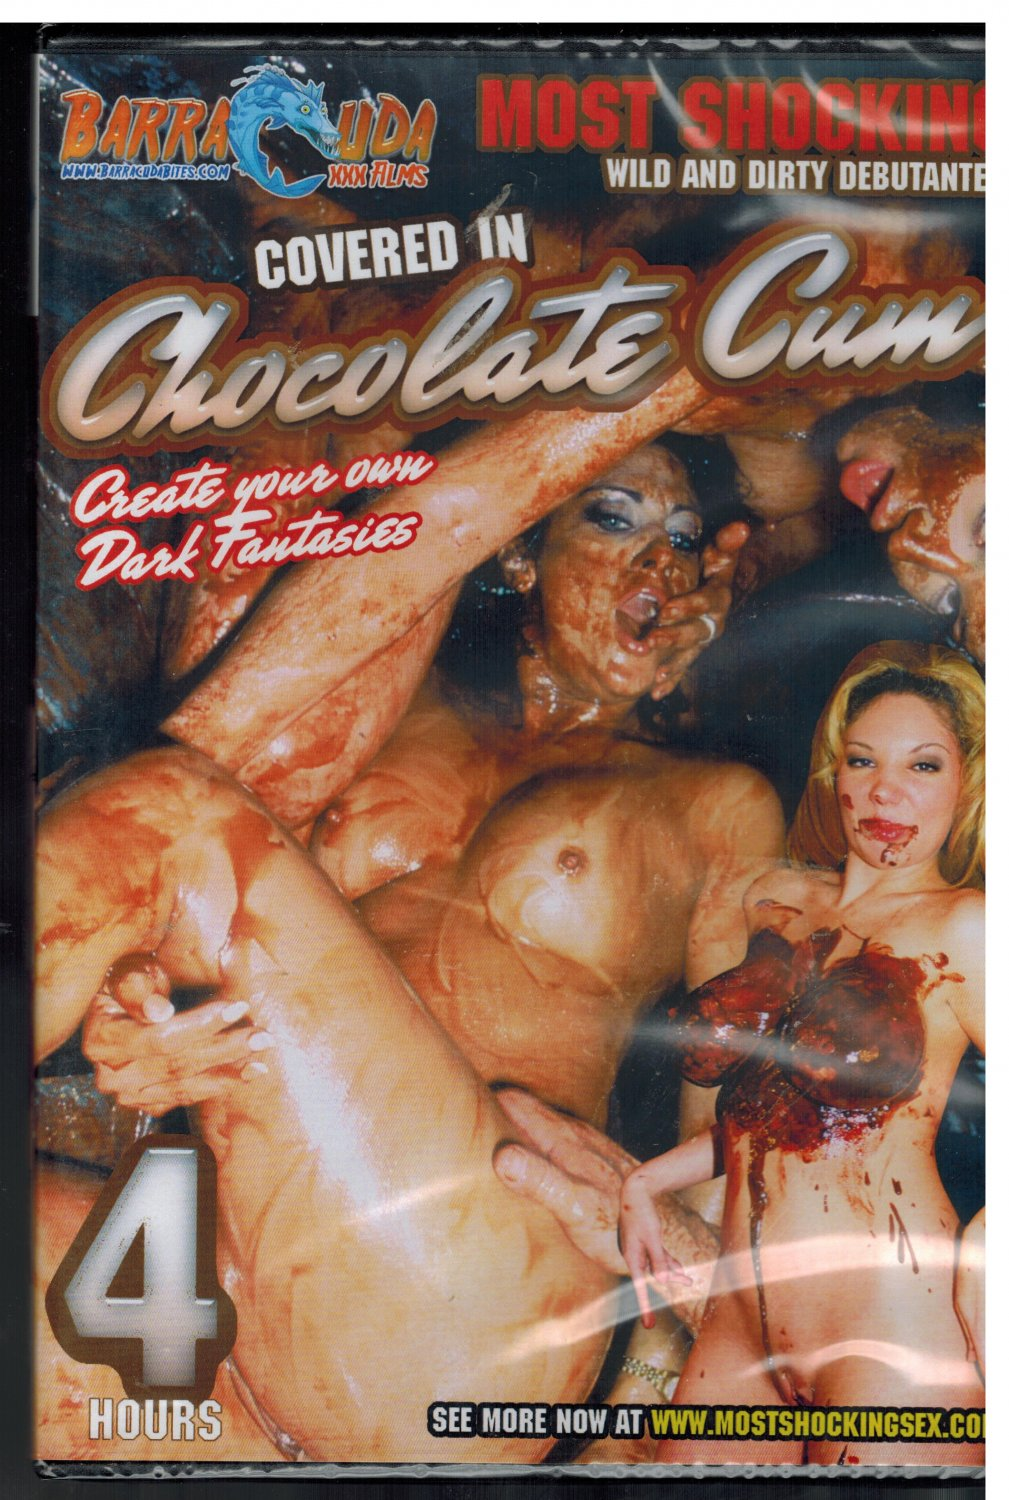 Covered in Chocolate Cum Fetish All Sex Buy 3 Get 1 Free